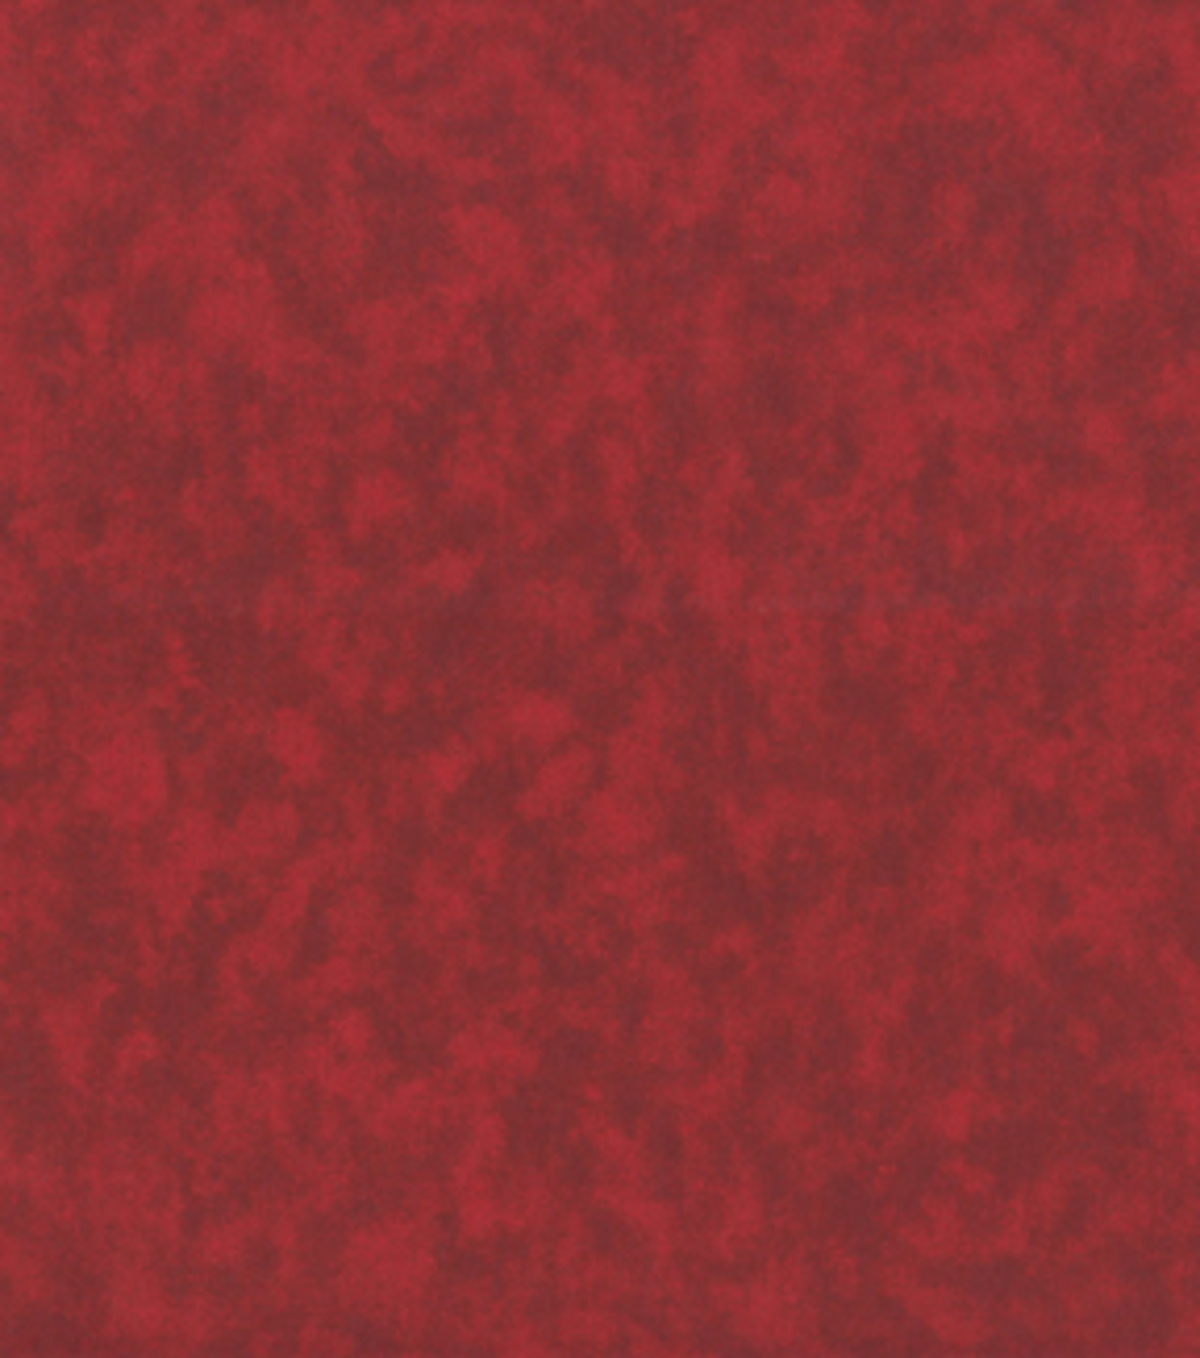 Keepsake Calico Cotton Fabric -Red Marble